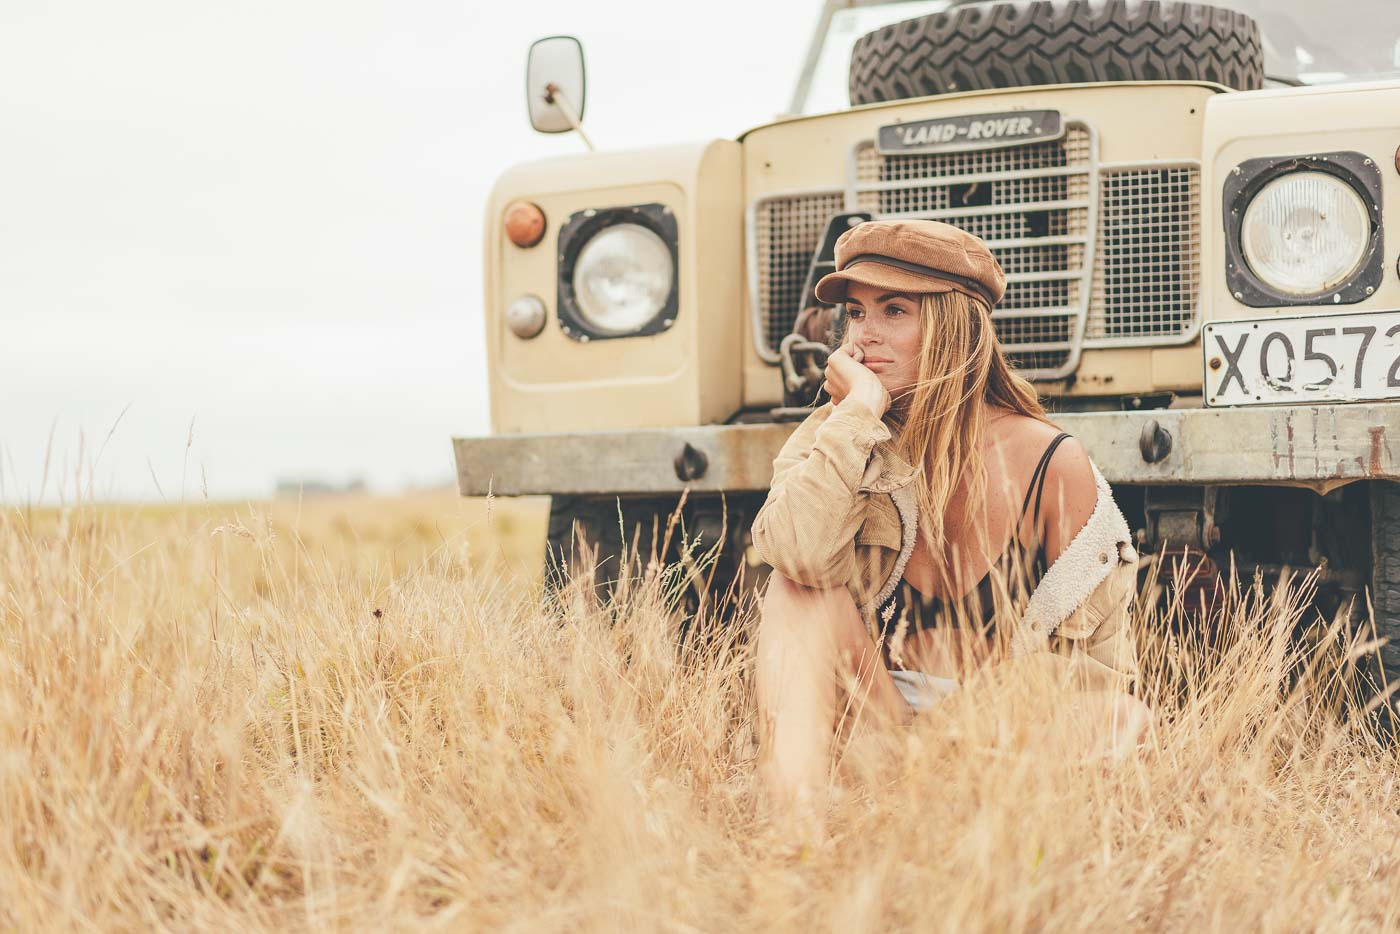 Jess Davis sitting in long grass in front of land rover